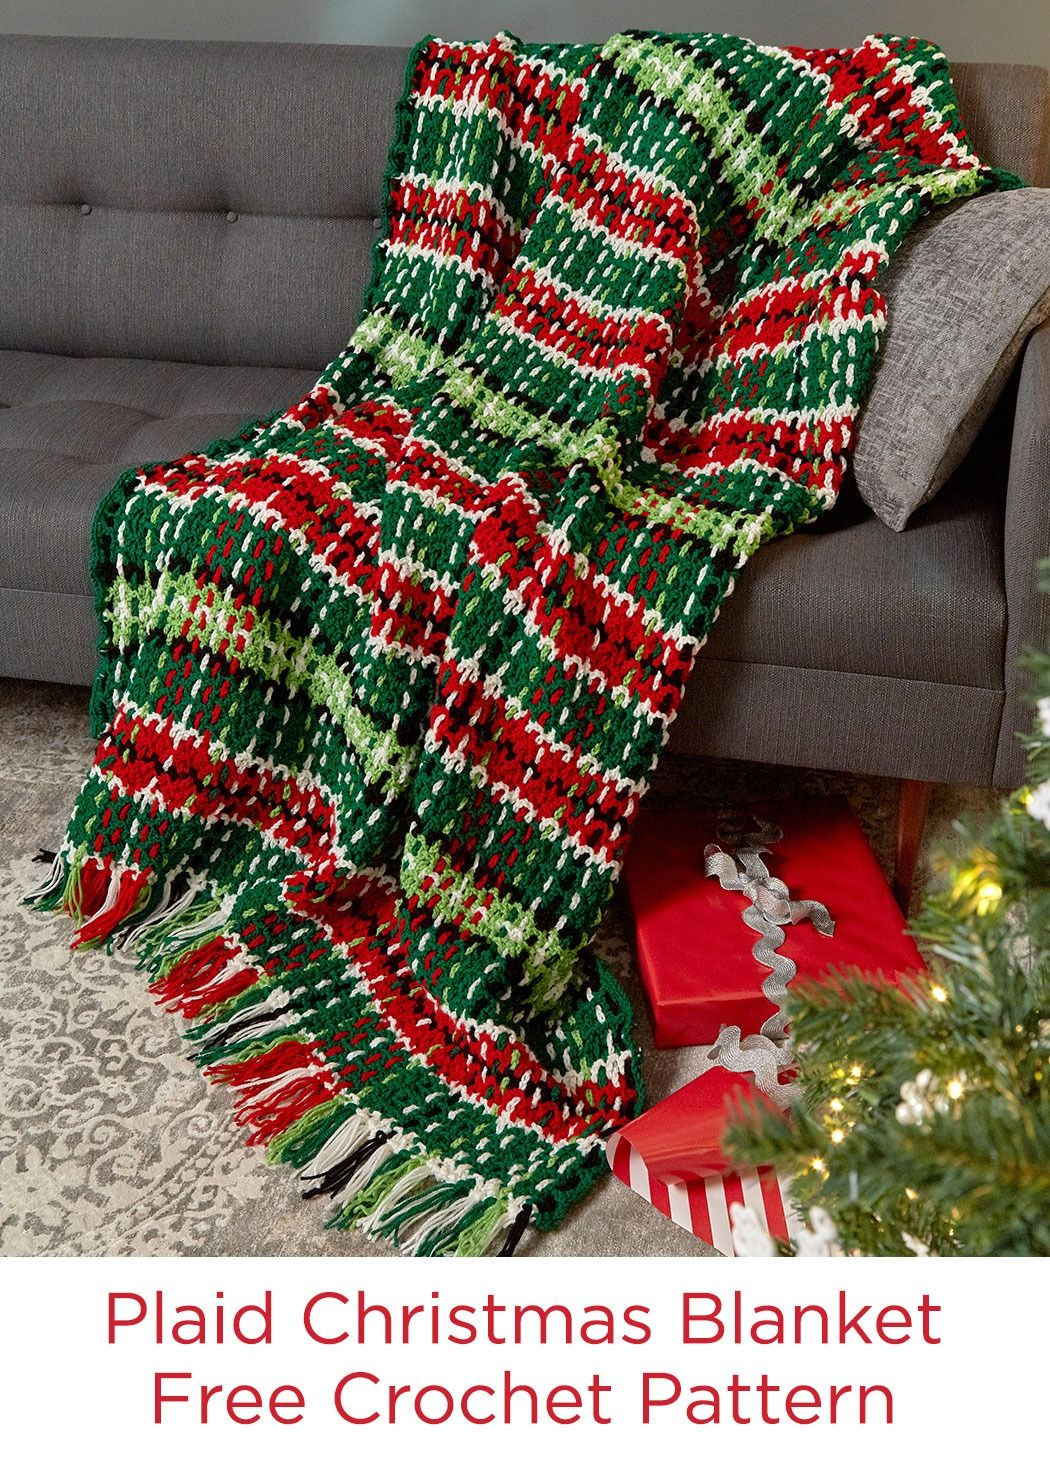 Red Heart Yarn Patterns Unique Plaid Christmas Blanket Free Crochet Pattern In Red Heart Of Luxury 48 Images Red Heart Yarn Patterns